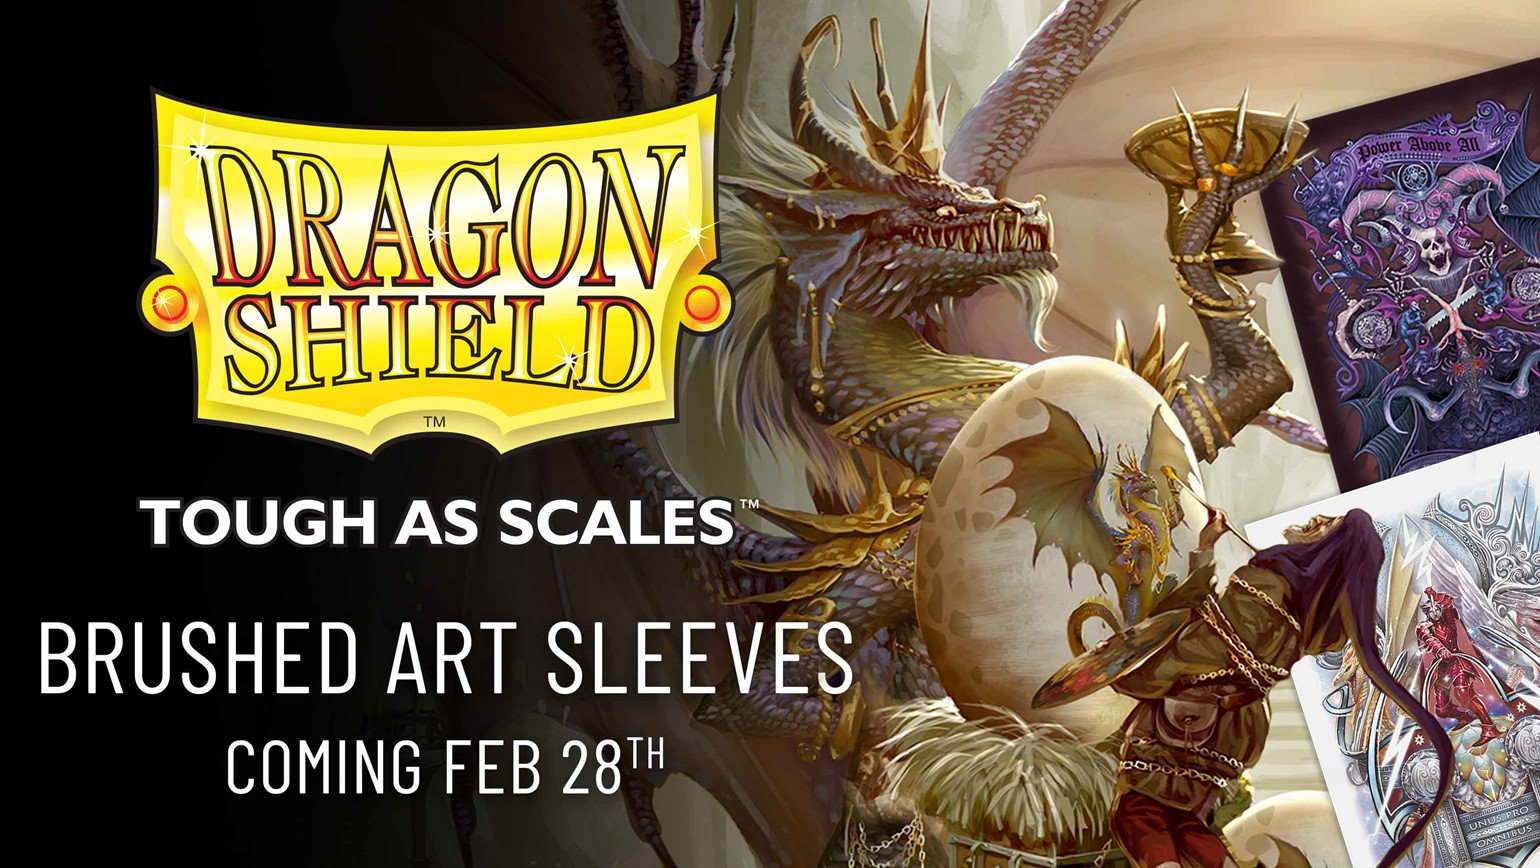 Brushed: A New Type of Sleeve from Dragon Shield Arrives February 28th